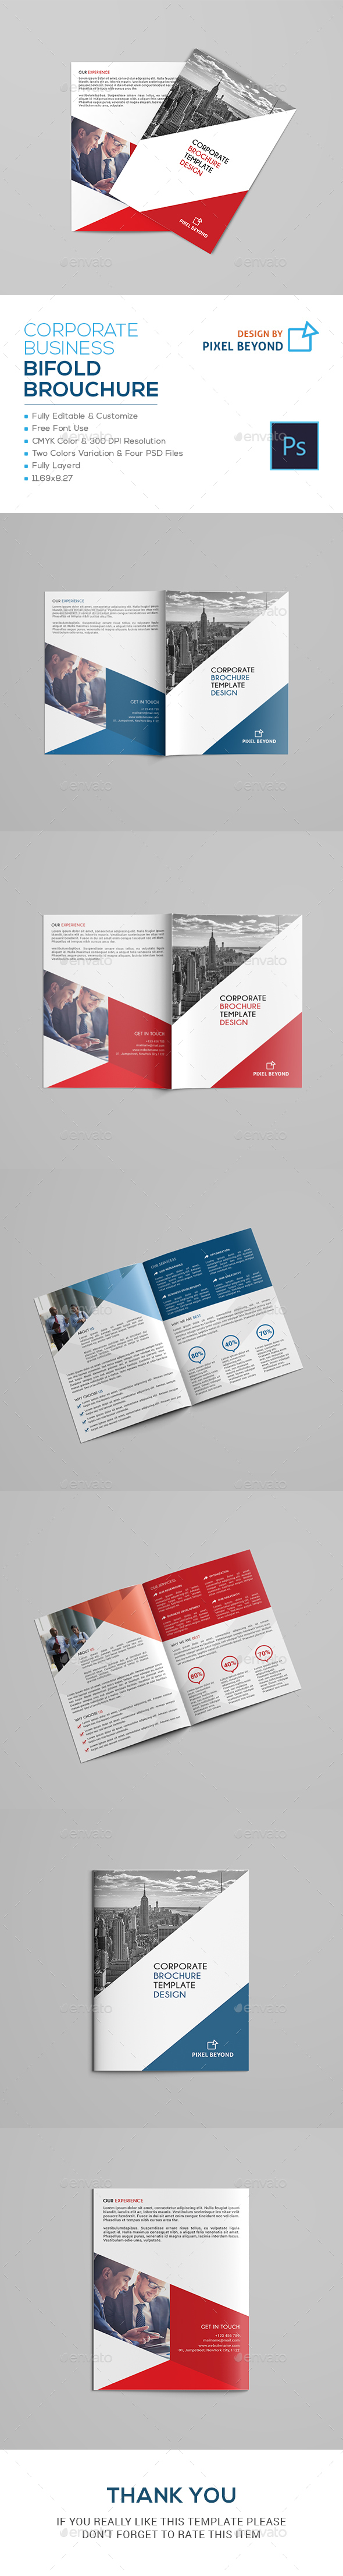 Corporate A4 Bifold Brochure - Corporate Brochures